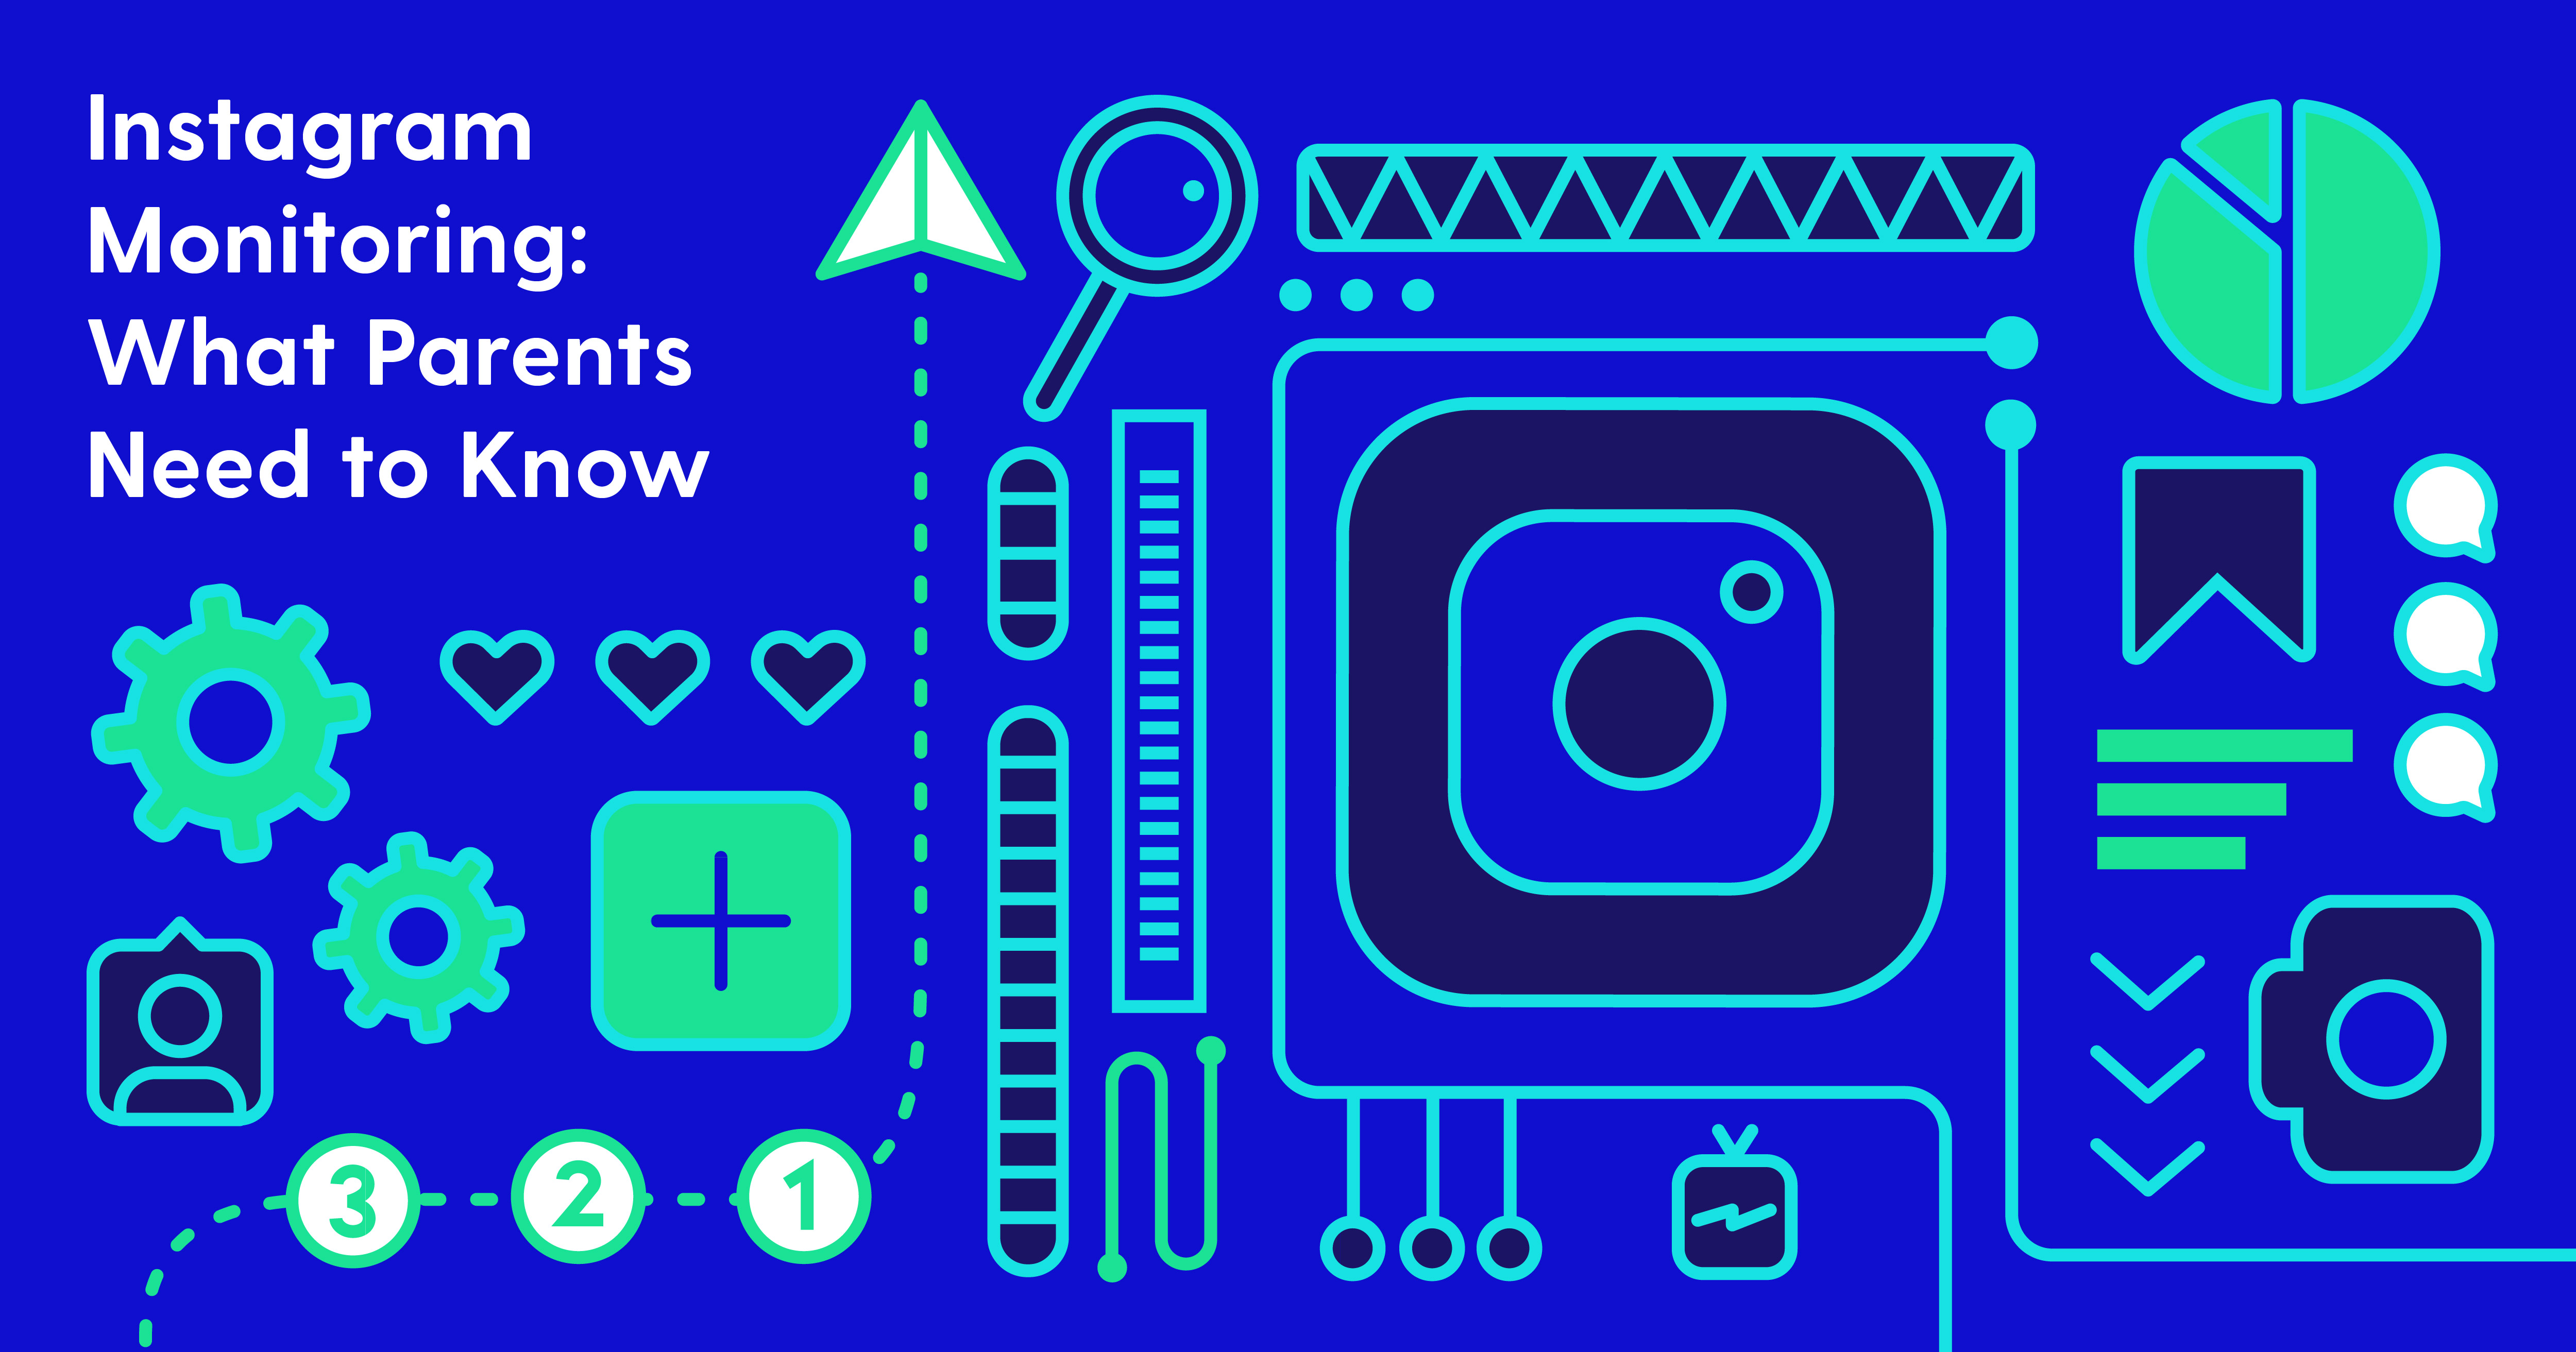 what parents need to know about Instagram monitoring